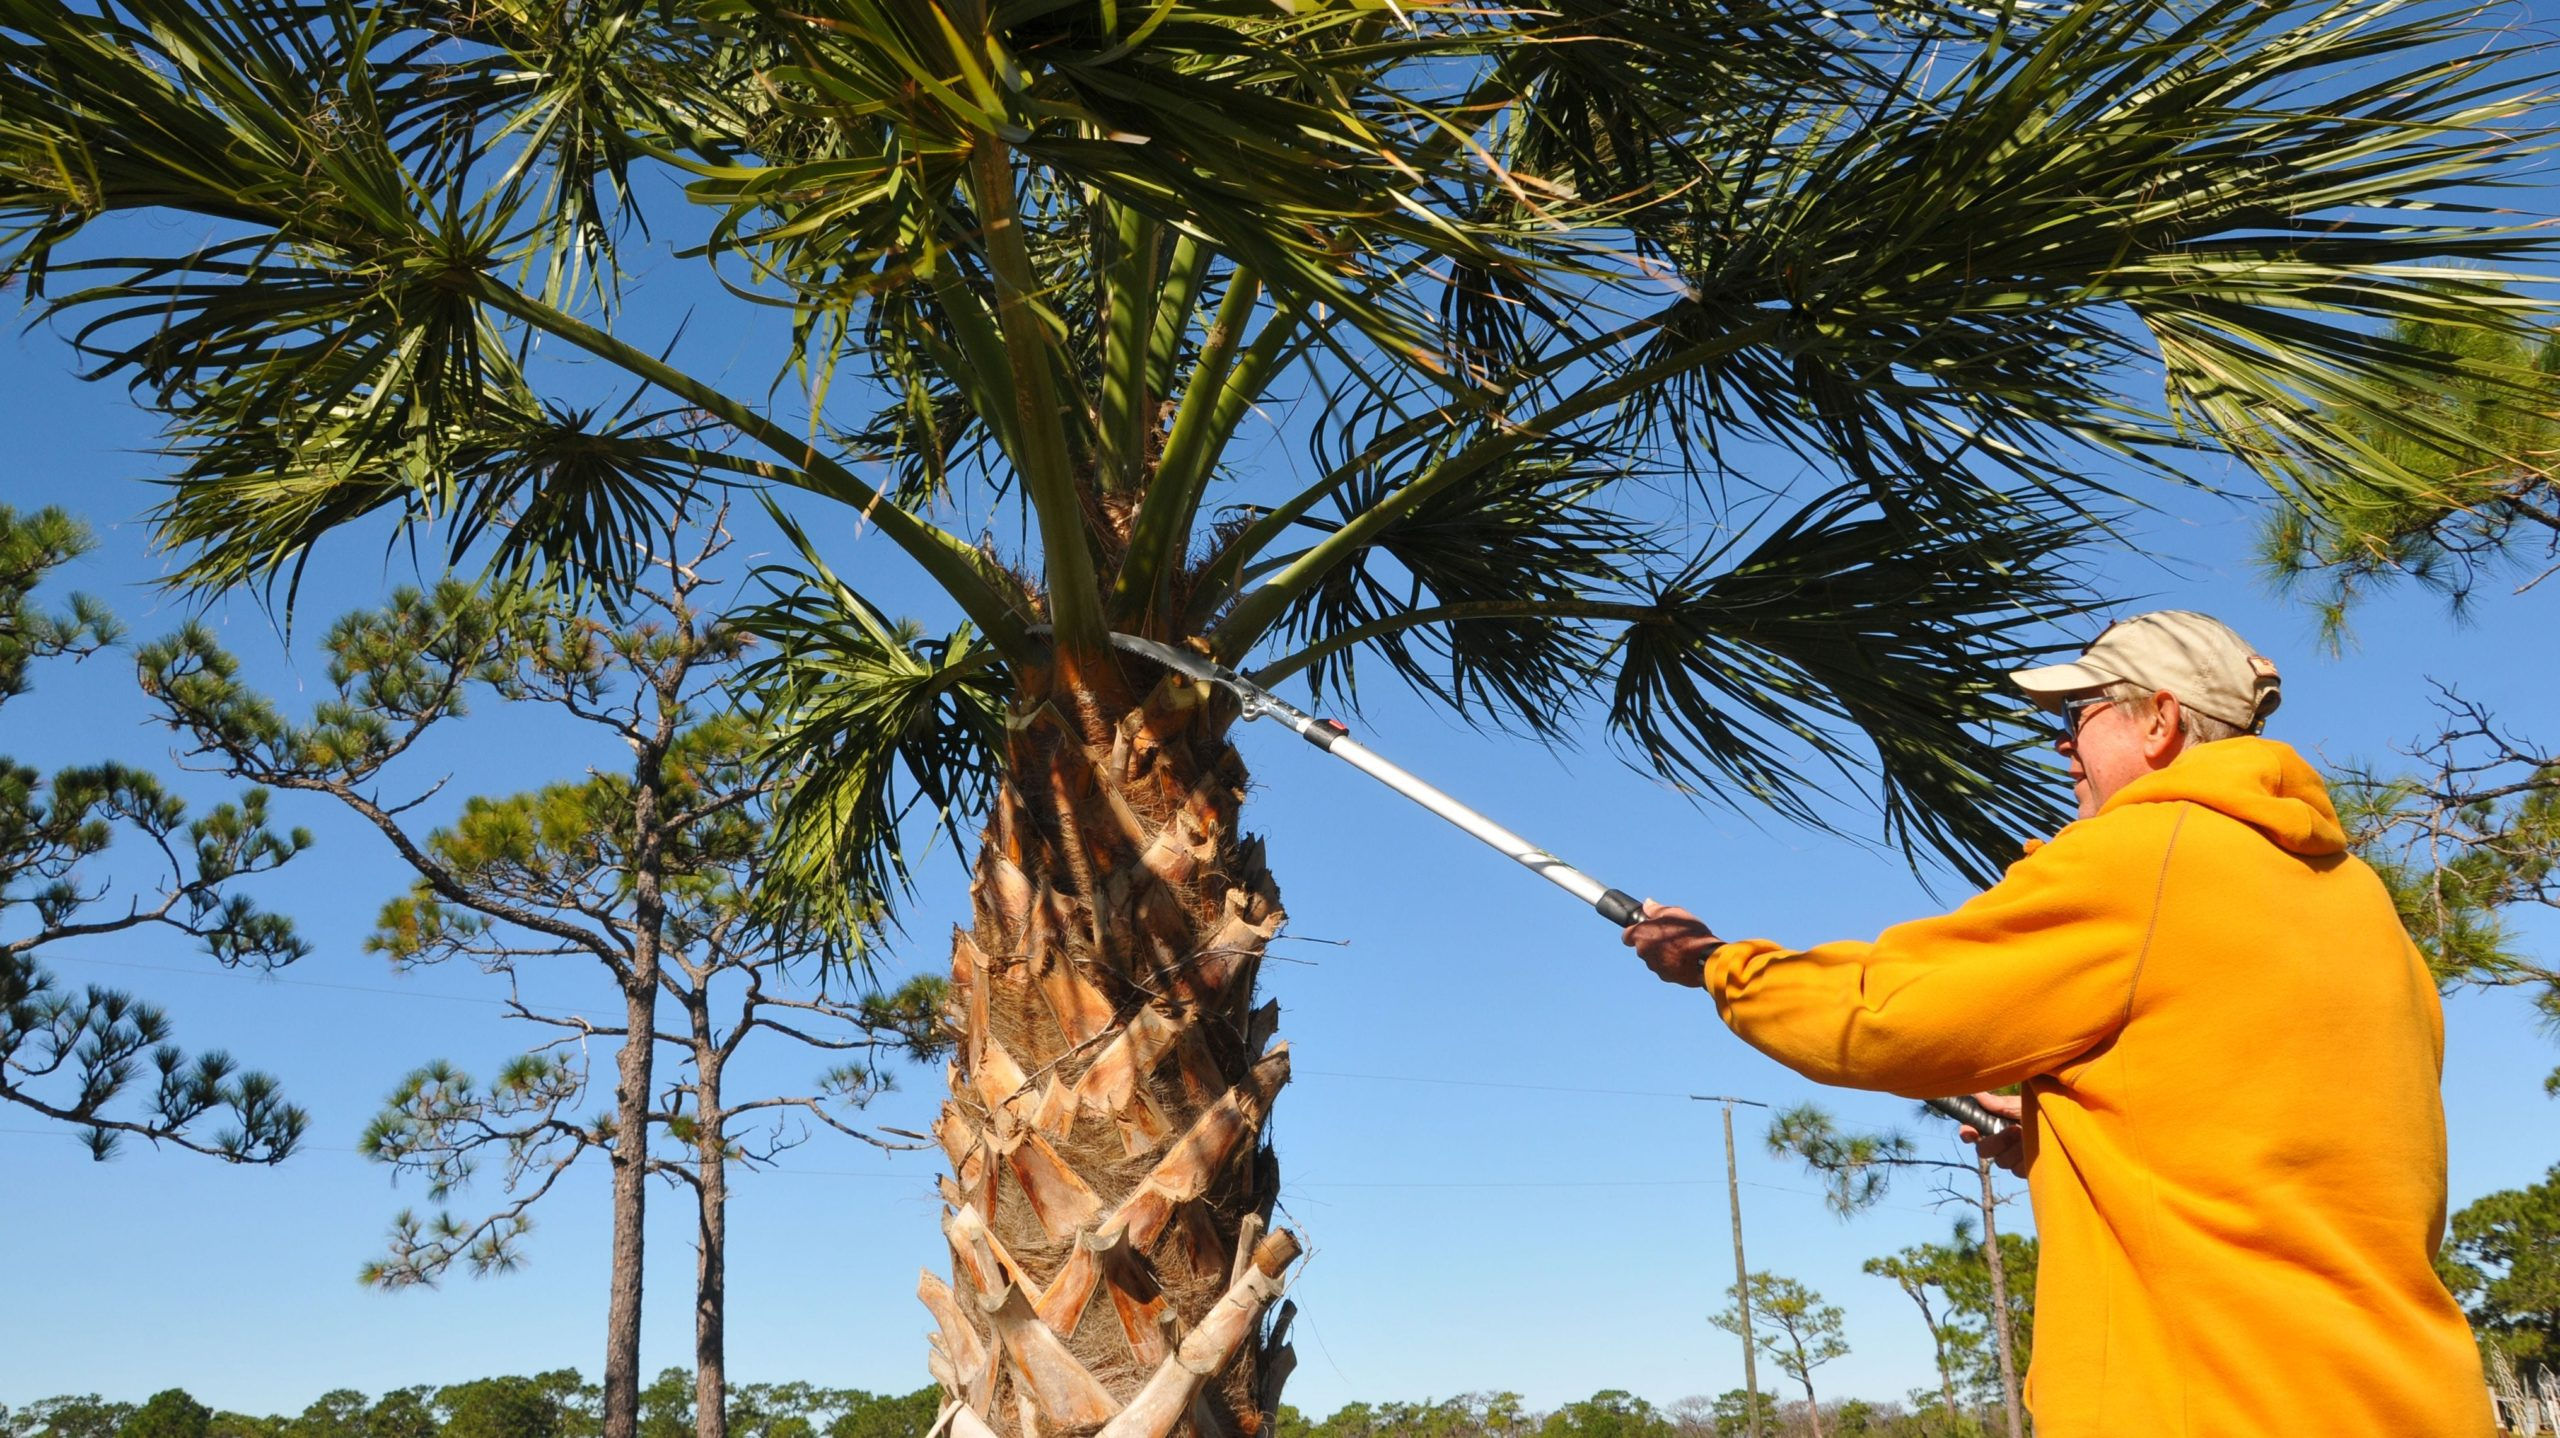 Cash-Jonesboro Tree Trimming and Stump Grinding Services-We Offer Tree Trimming Services, Tree Removal, Tree Pruning, Tree Cutting, Residential and Commercial Tree Trimming Services, Storm Damage, Emergency Tree Removal, Land Clearing, Tree Companies, Tree Care Service, Stump Grinding, and we're the Best Tree Trimming Company Near You Guaranteed!